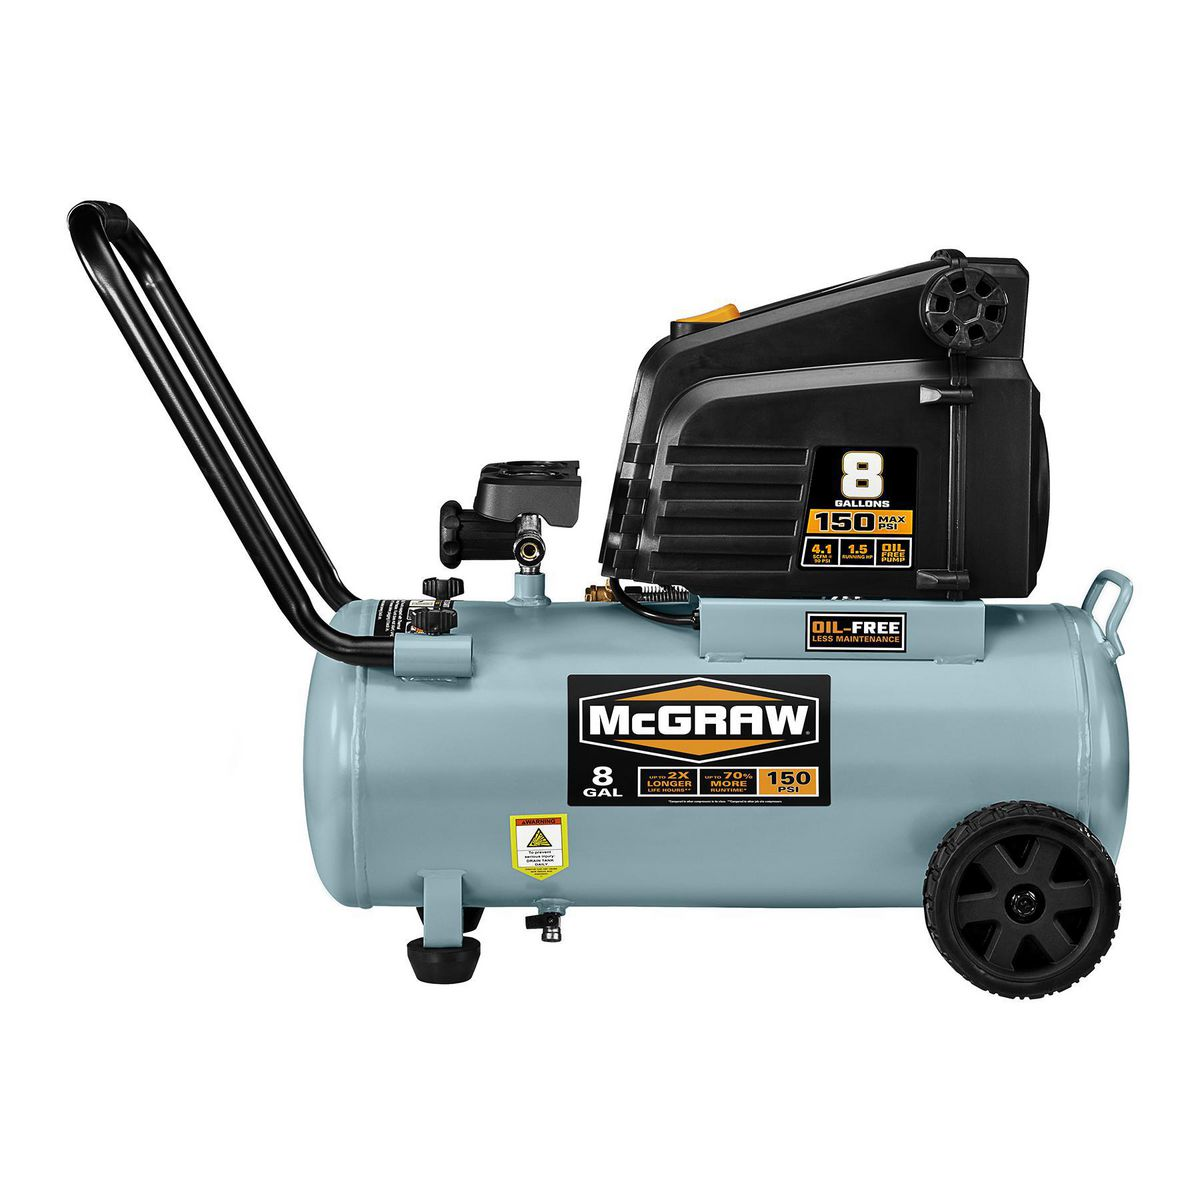 portable air compressor 8 gallon 1 5 hp 150 psi free portable air compressor 10663